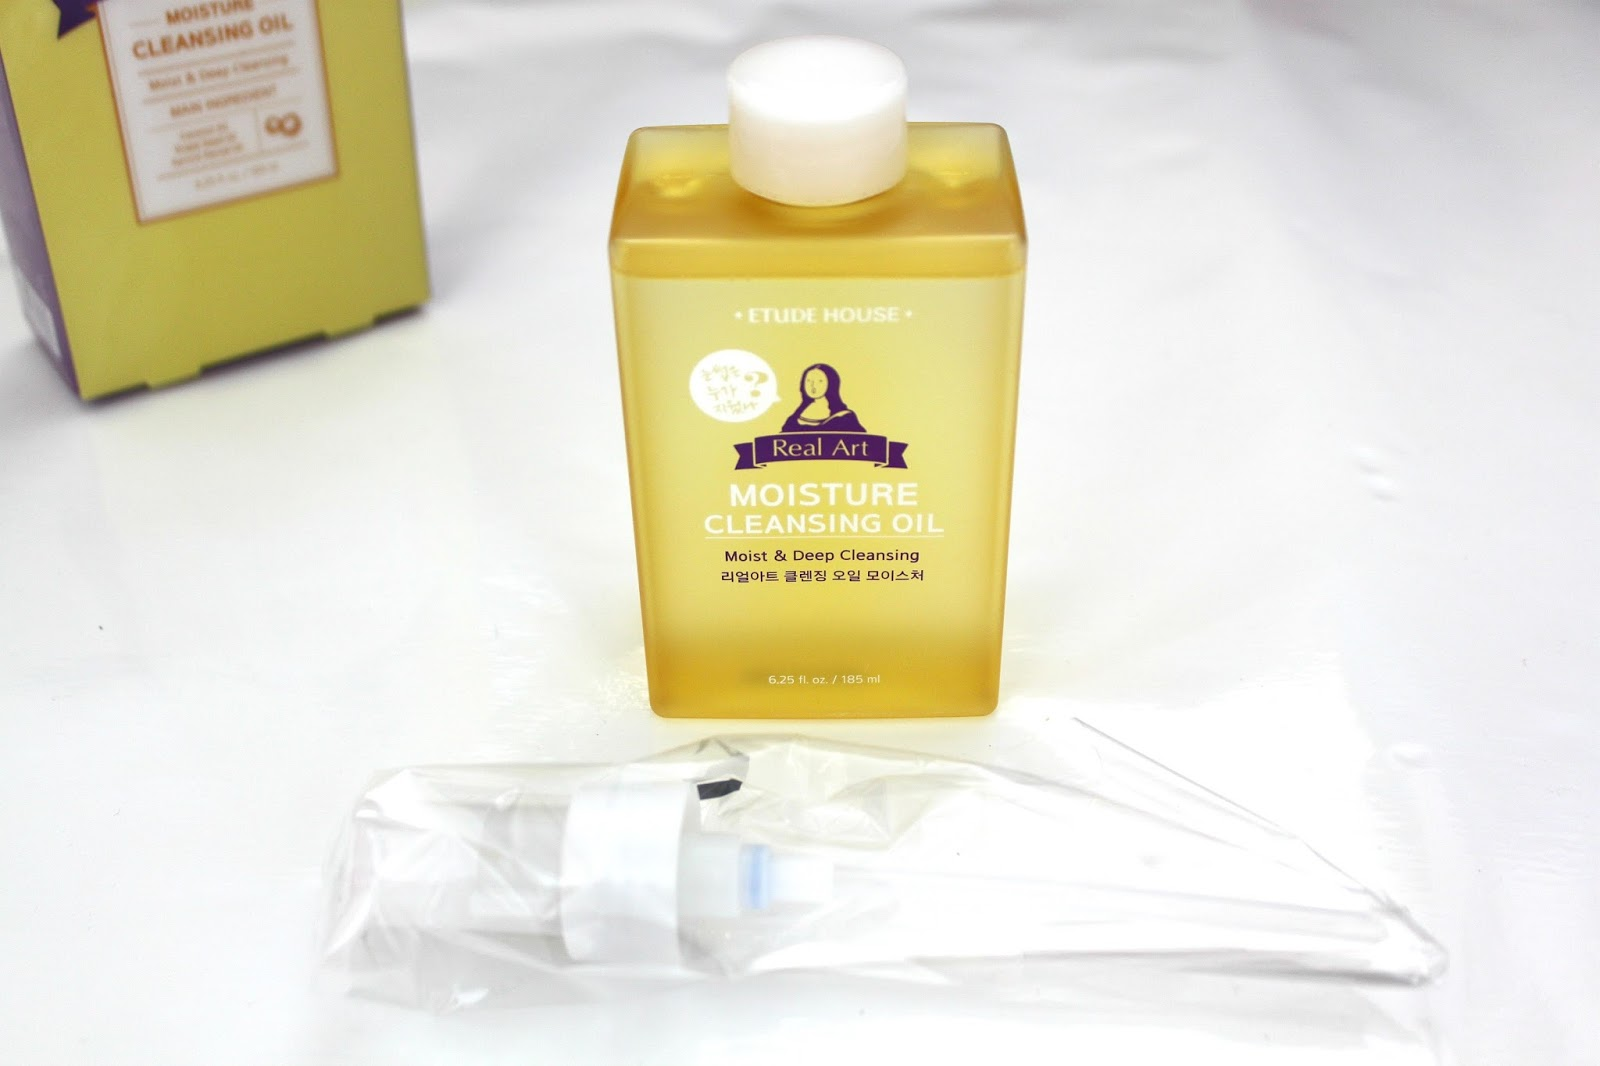 Etude House Real Art Cleansing Oil makeup remover blog review